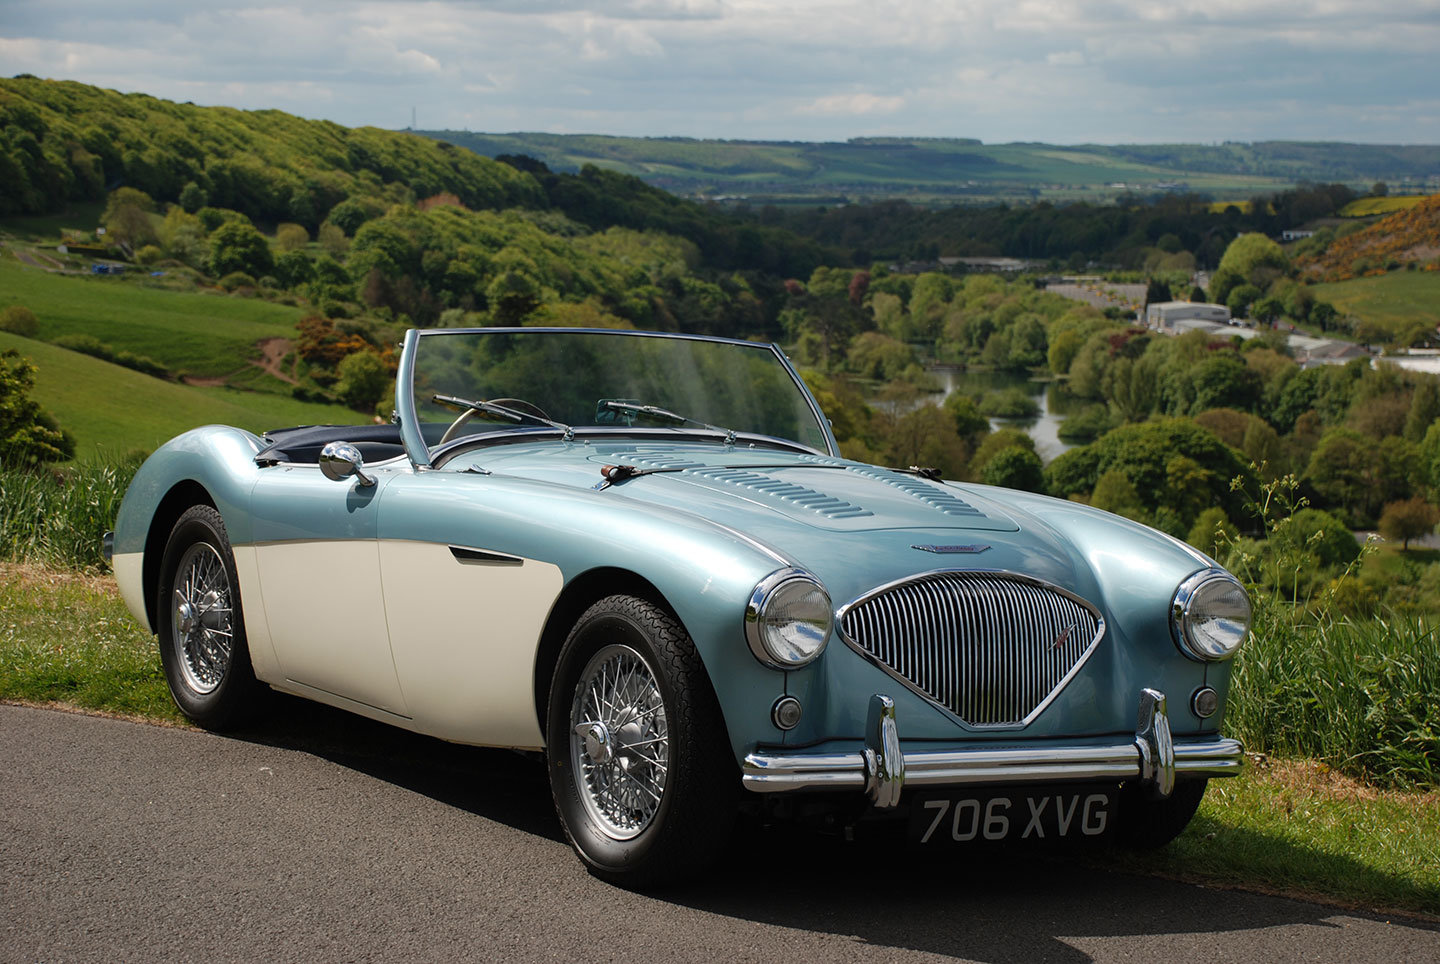 1955 Austin Healey 100/4 BN2 M Specification For Sale (picture 1 of 10)